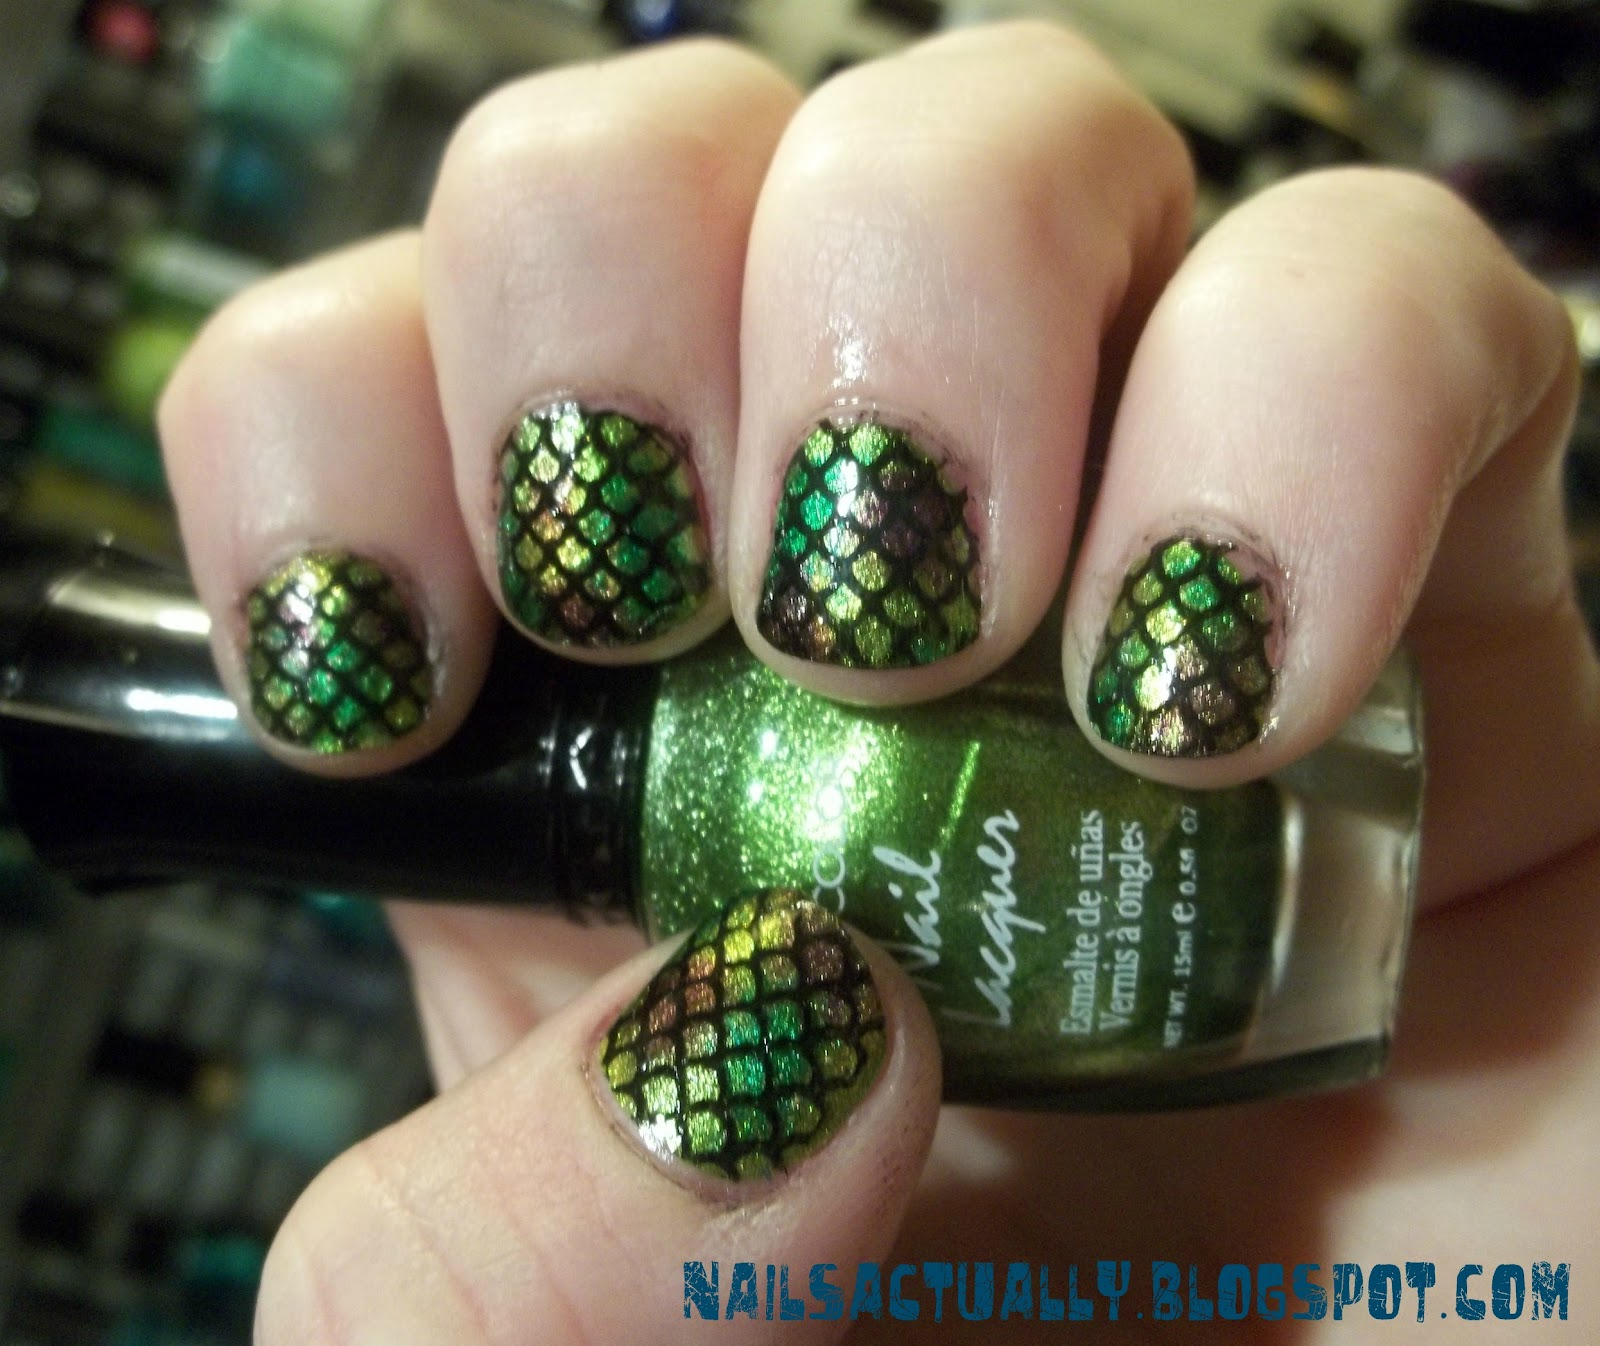 Nails Actually: Metallic Fish Scale Nails